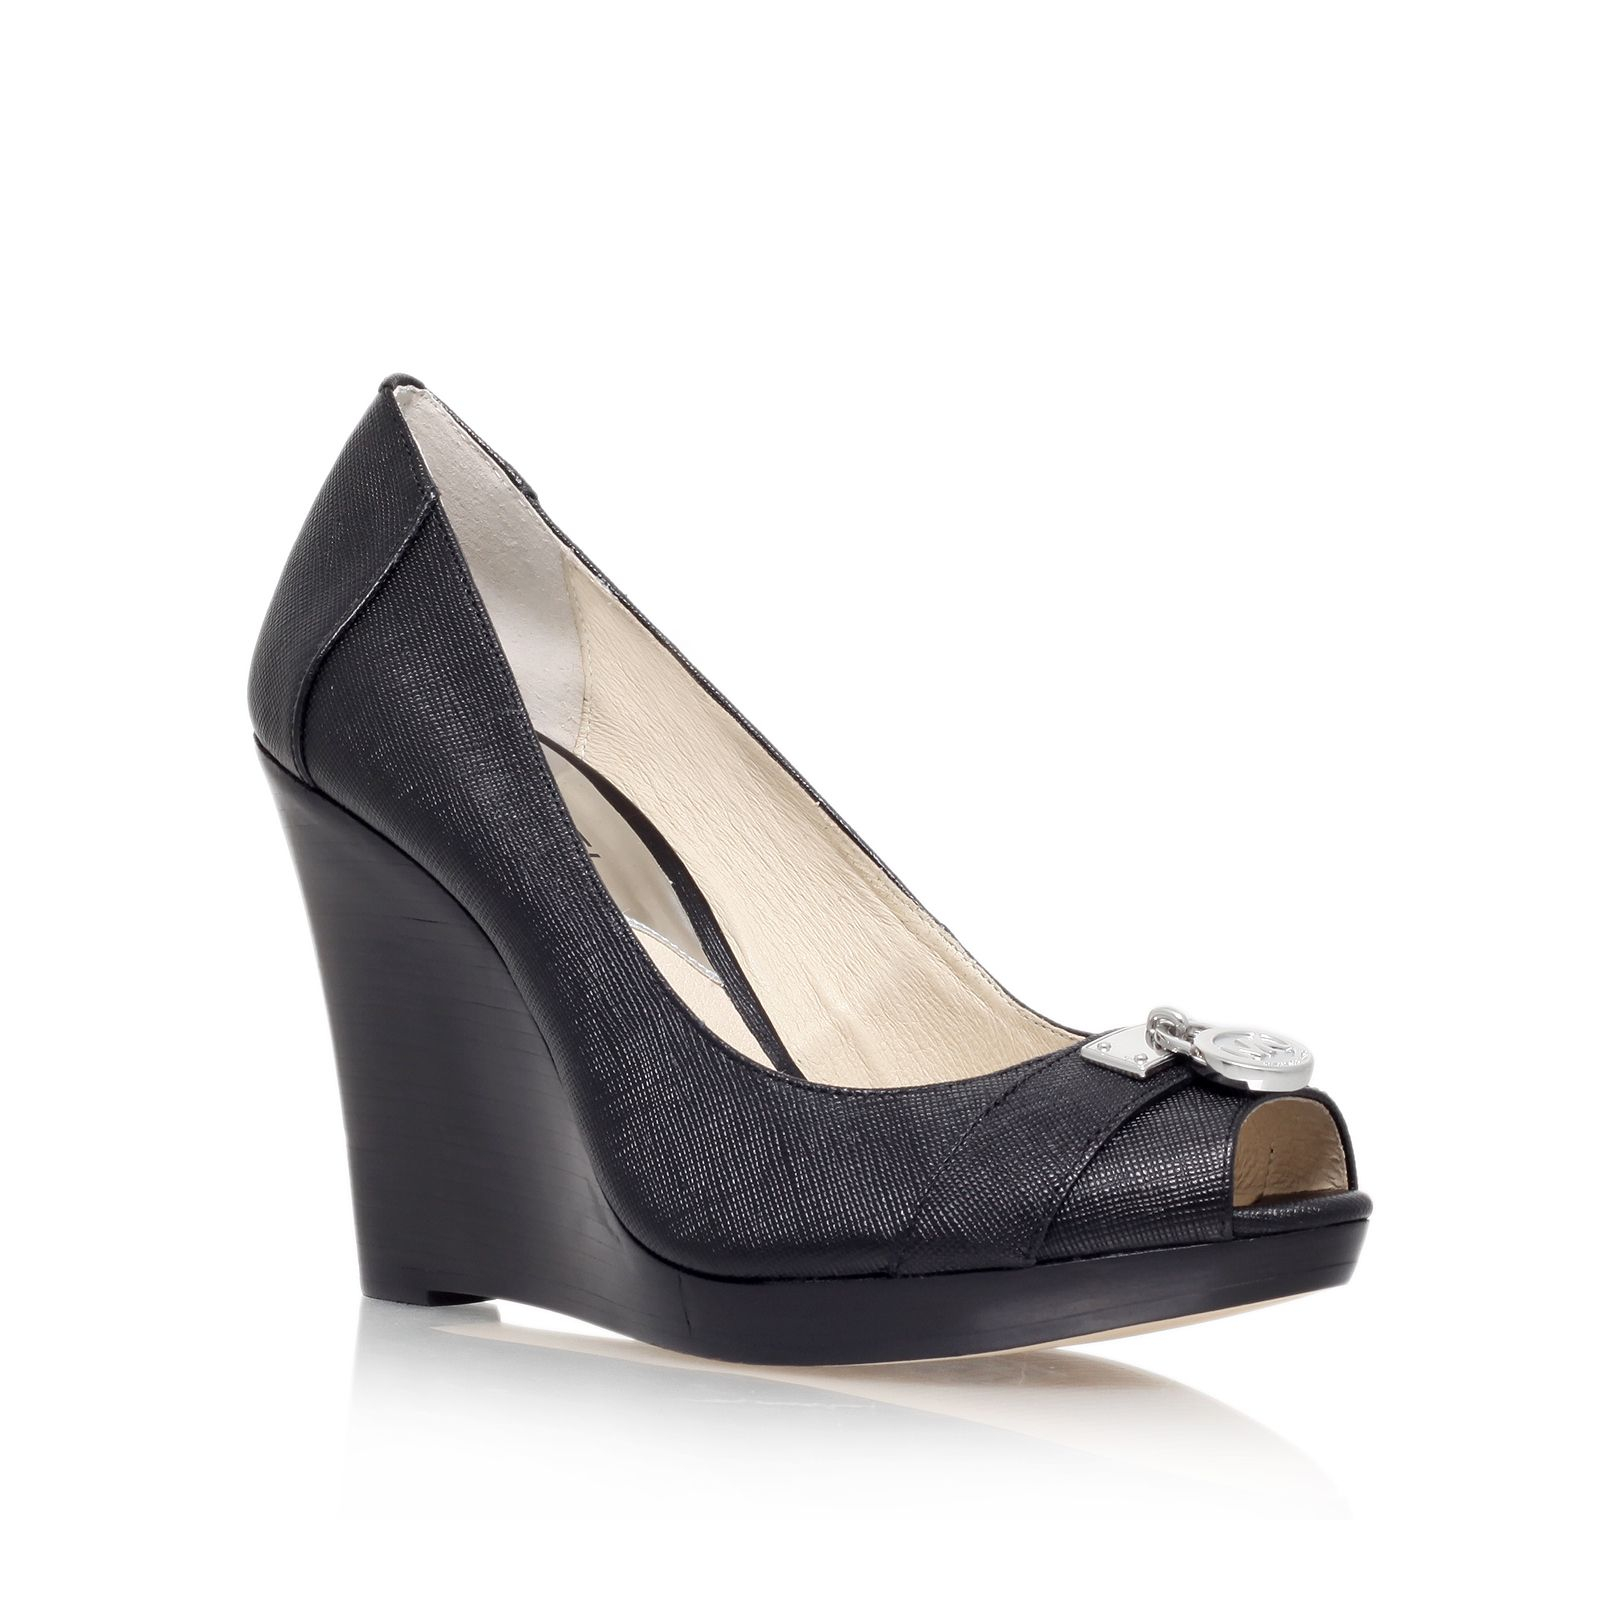 Michael Kors Hamilton Wedge Peep Toe Court Shoes In Black